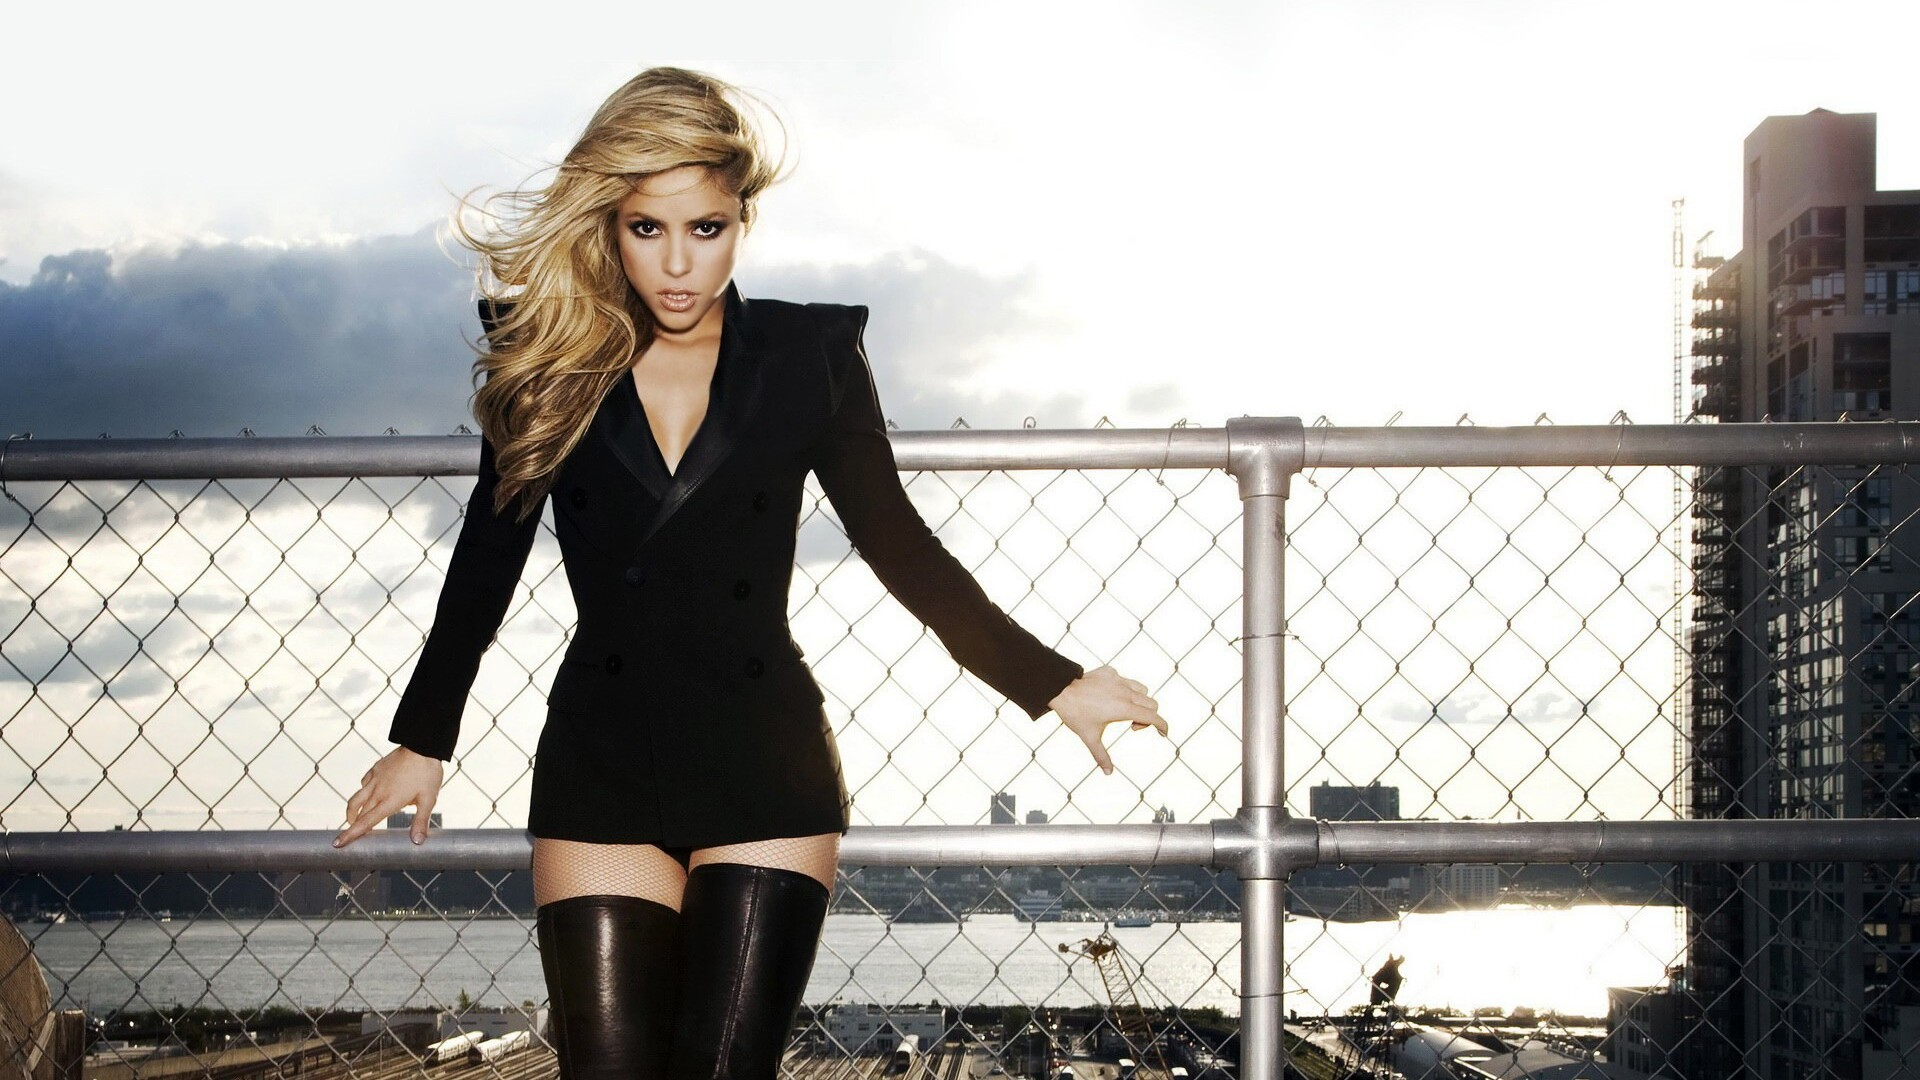 1920x1080 Shakira Laptop Full Hd 1080p Hd 4k Wallpapers